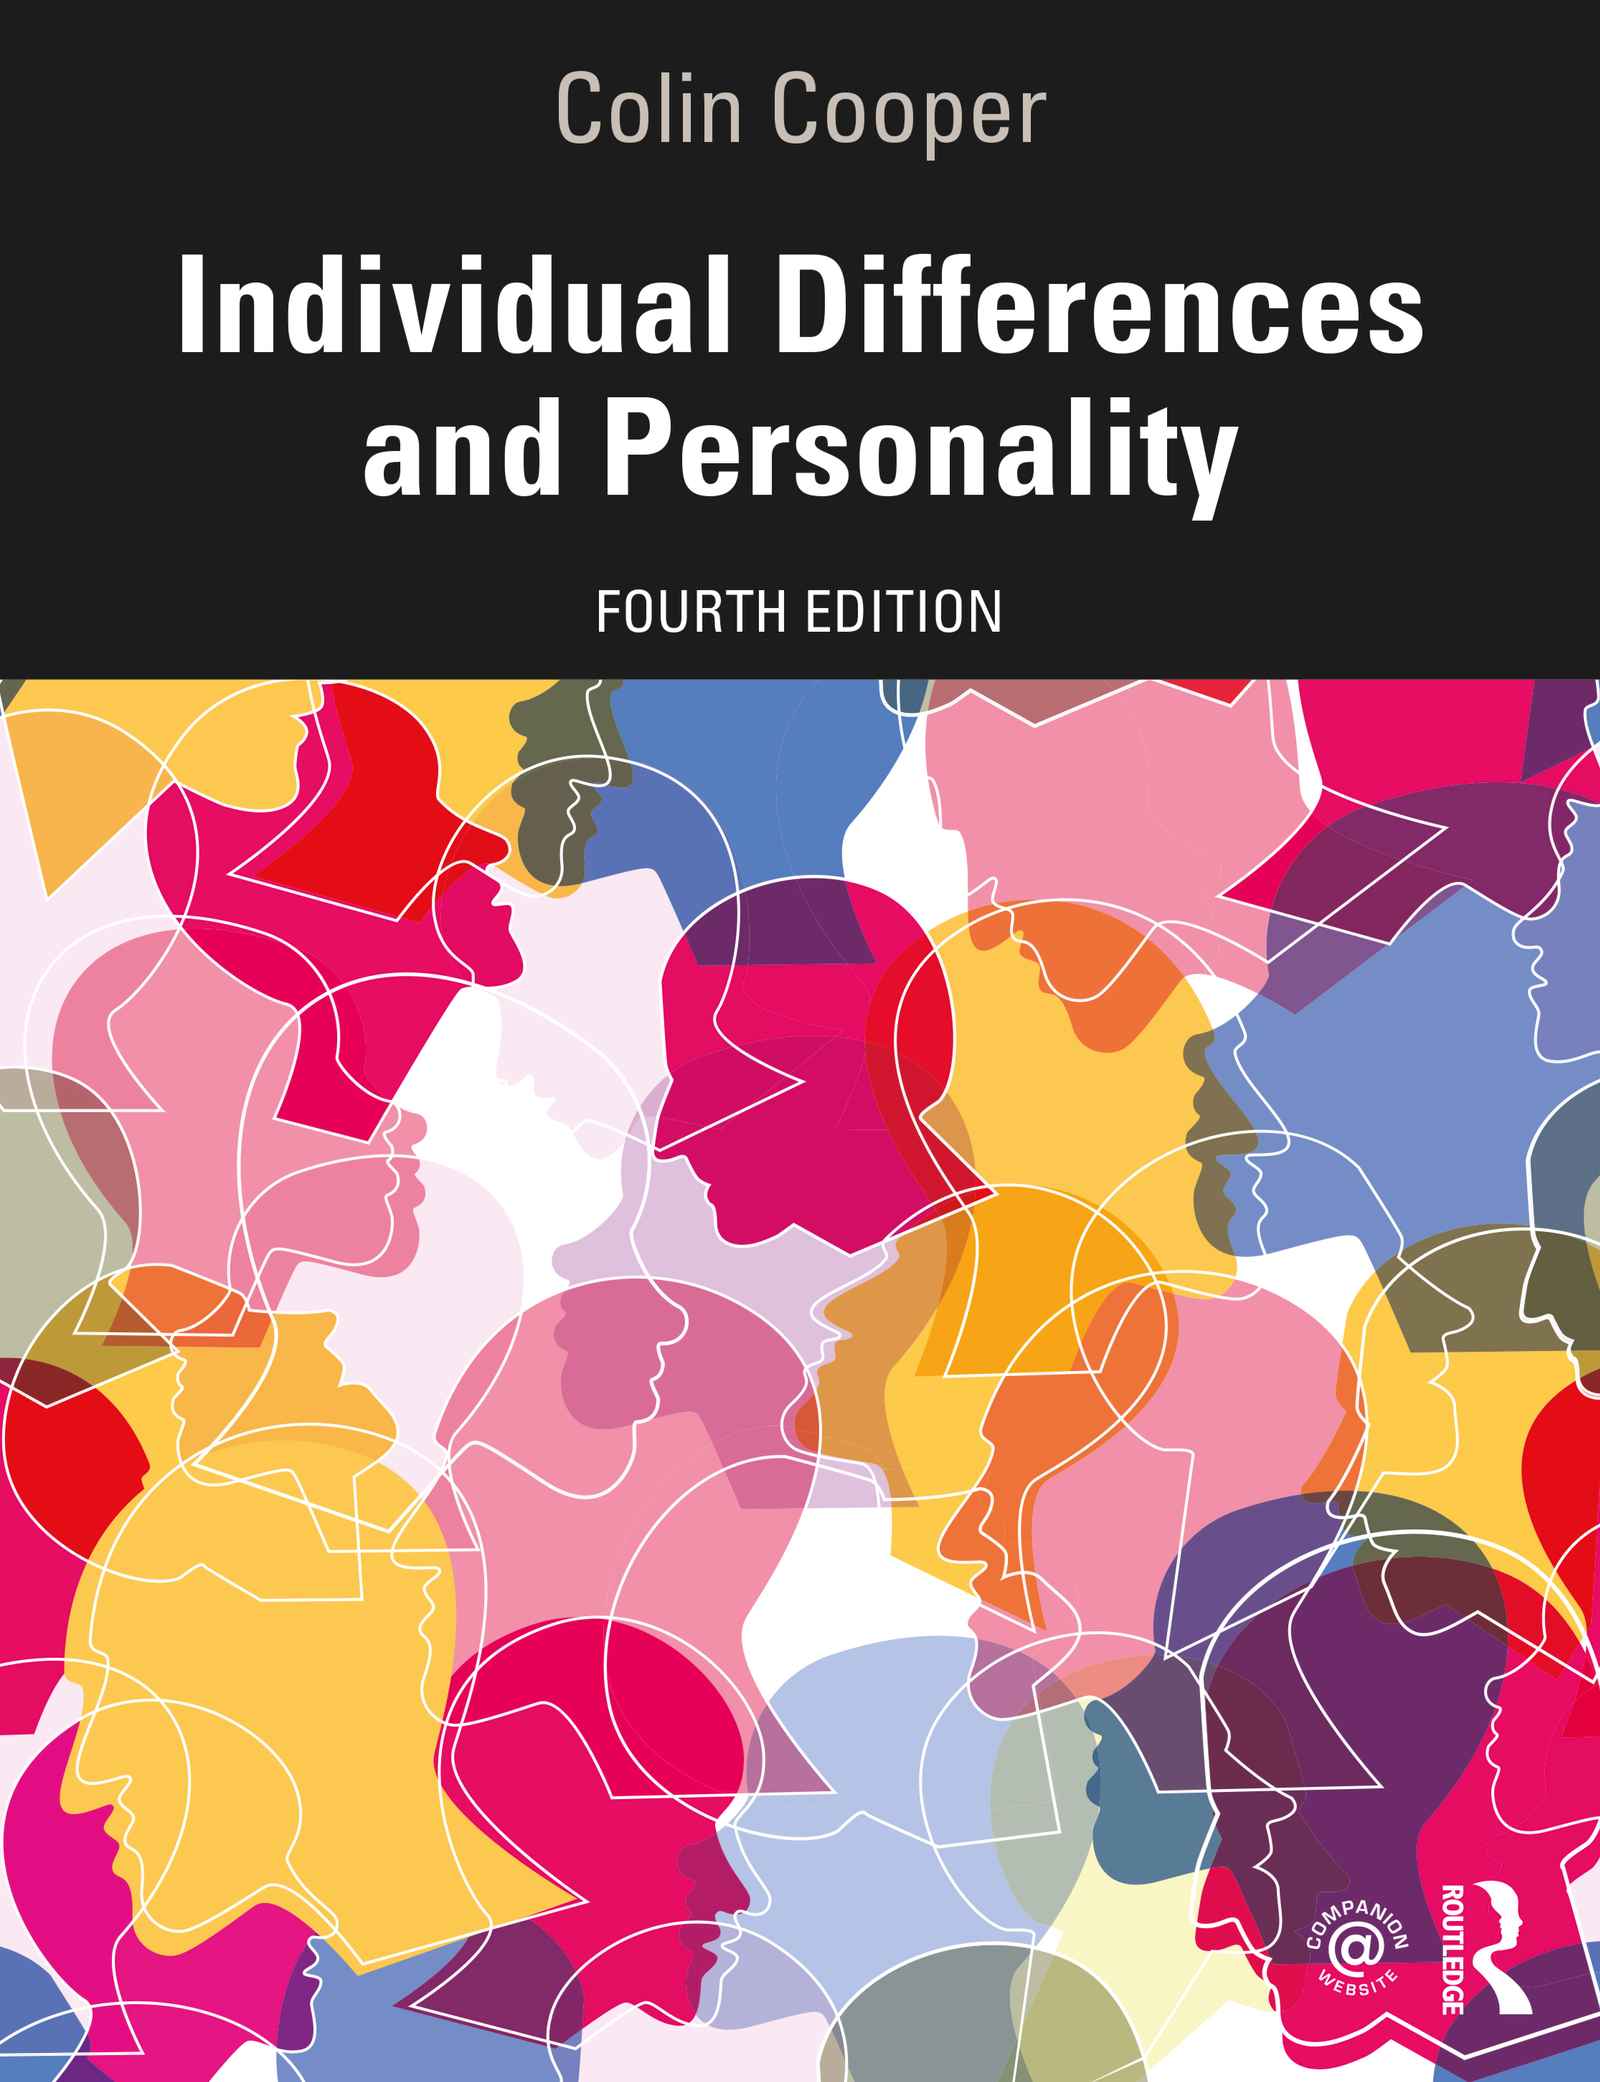 Introduction to individual differences